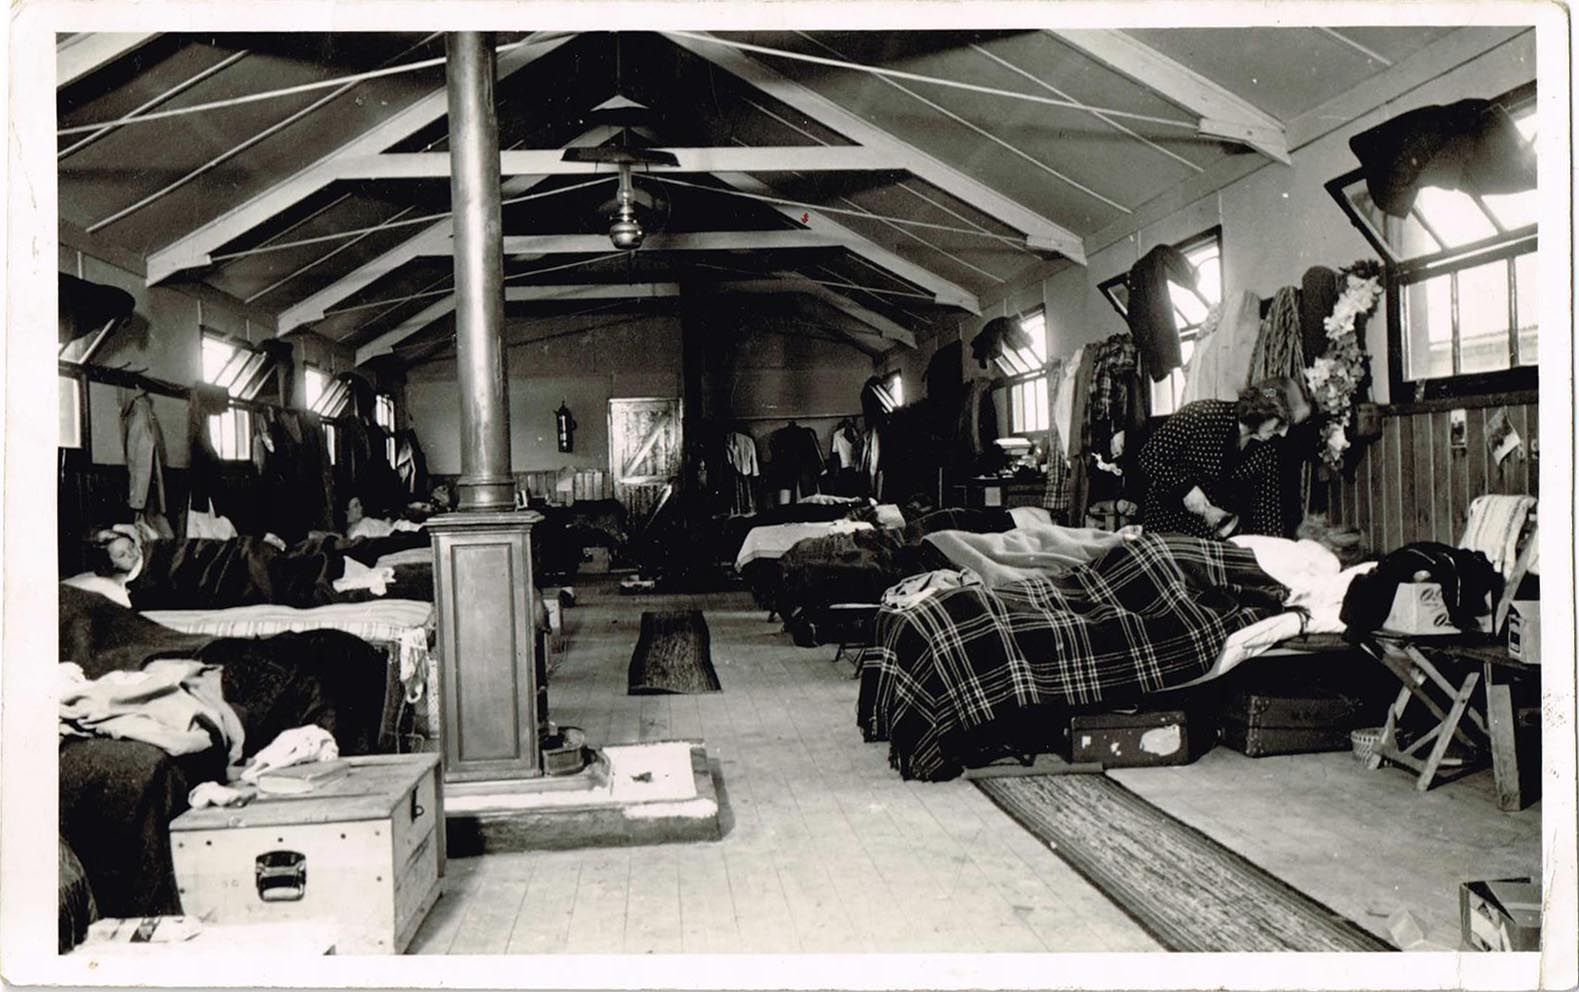 Accommodation at Culford Camp, Suffolk. Margaret Elizabeth Sutherland (nee Coldwell) at Culford Camp, Suffolk